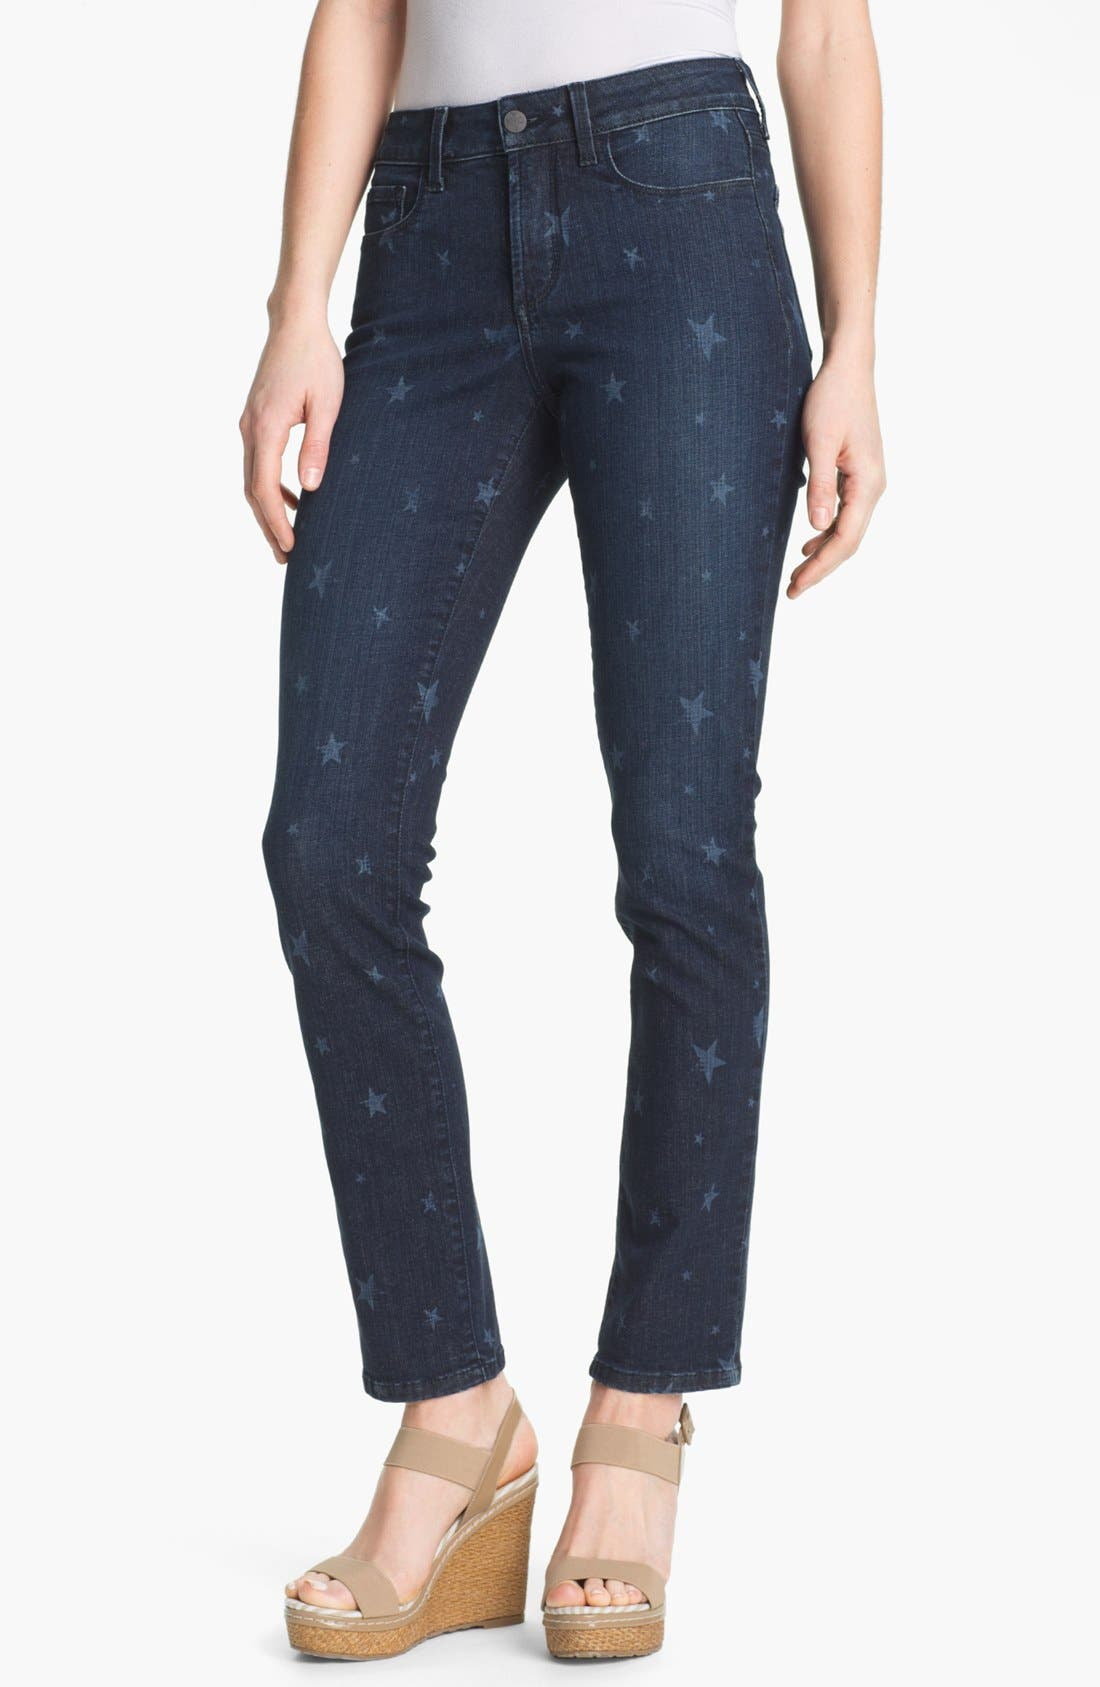 Alternate Image 1 Selected - NYDJ 'Sheri' Star Print Skinny Jeans